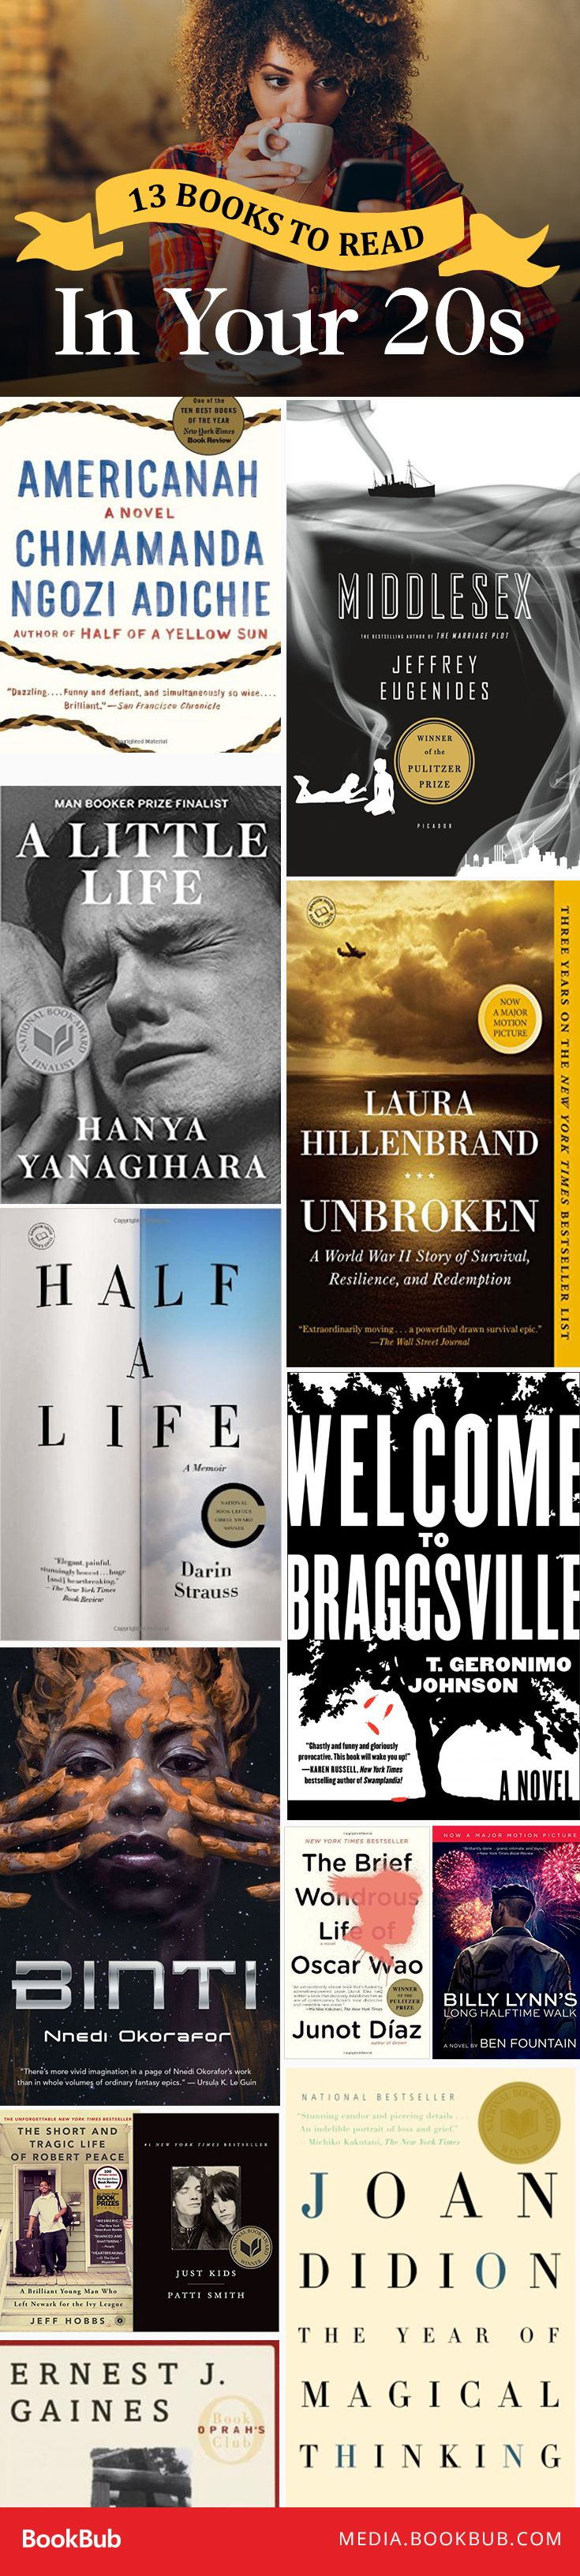 A list of 13 books to read in your 20s.